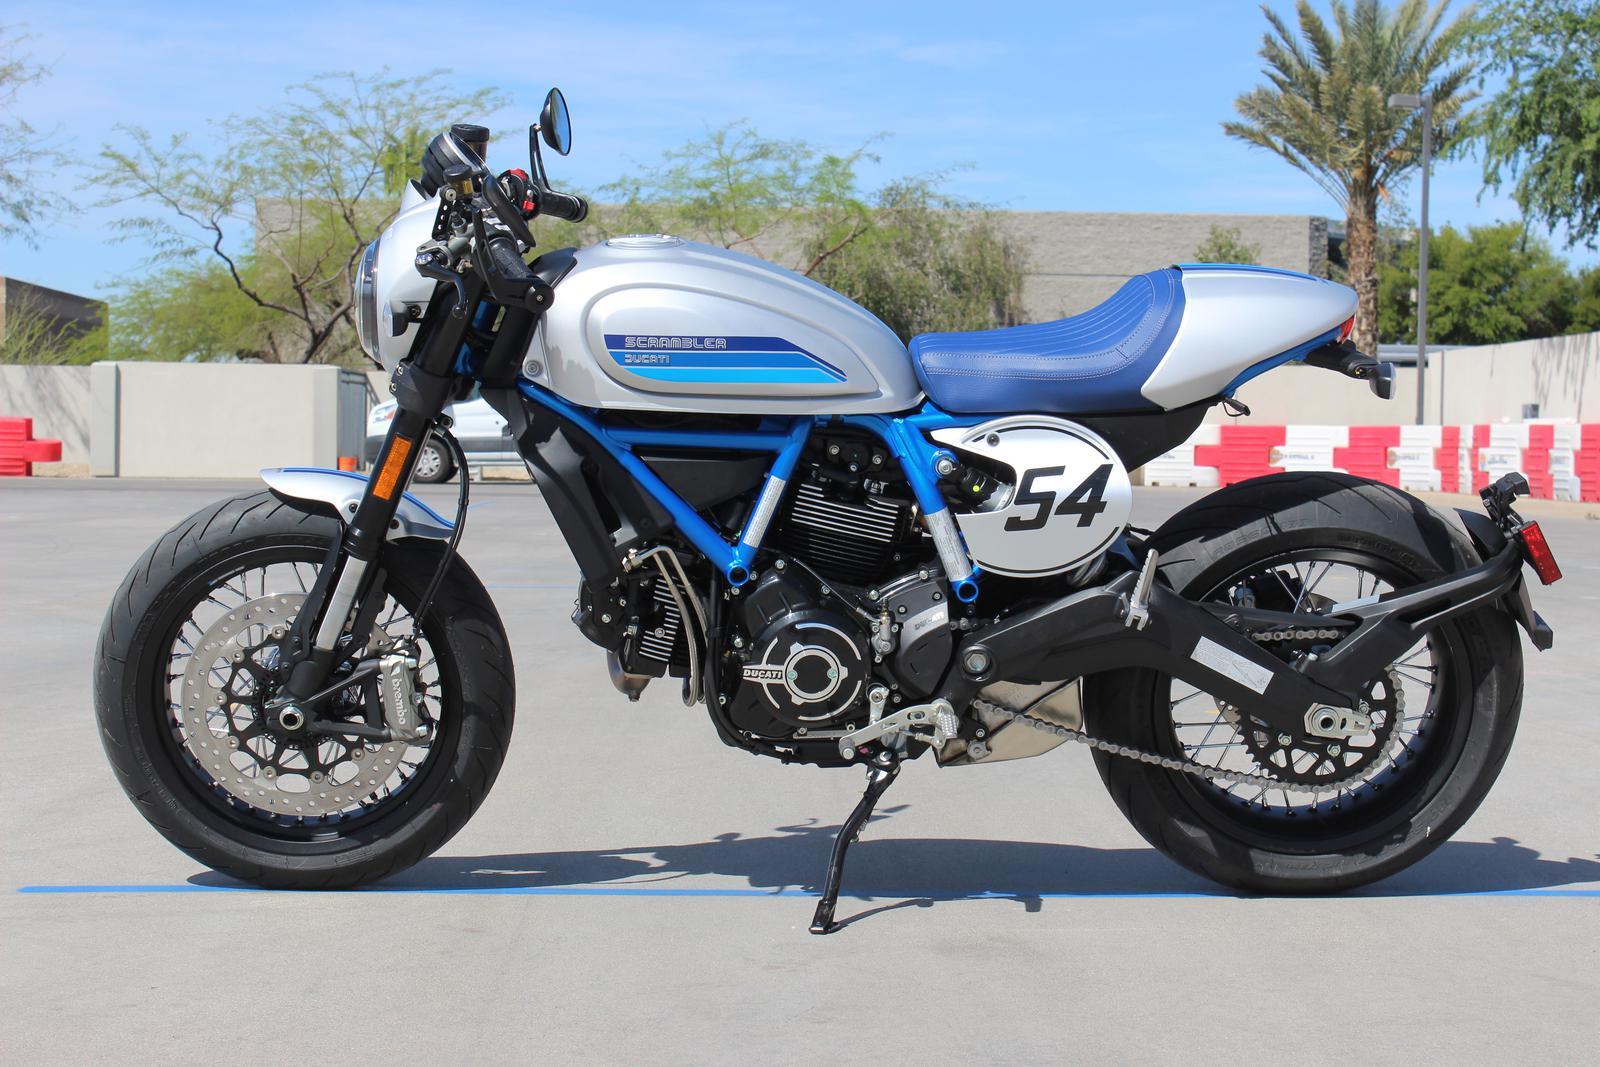 2019 Ducati Scrambler Cafe Racer For Sale In Scottsdale Az Go Az